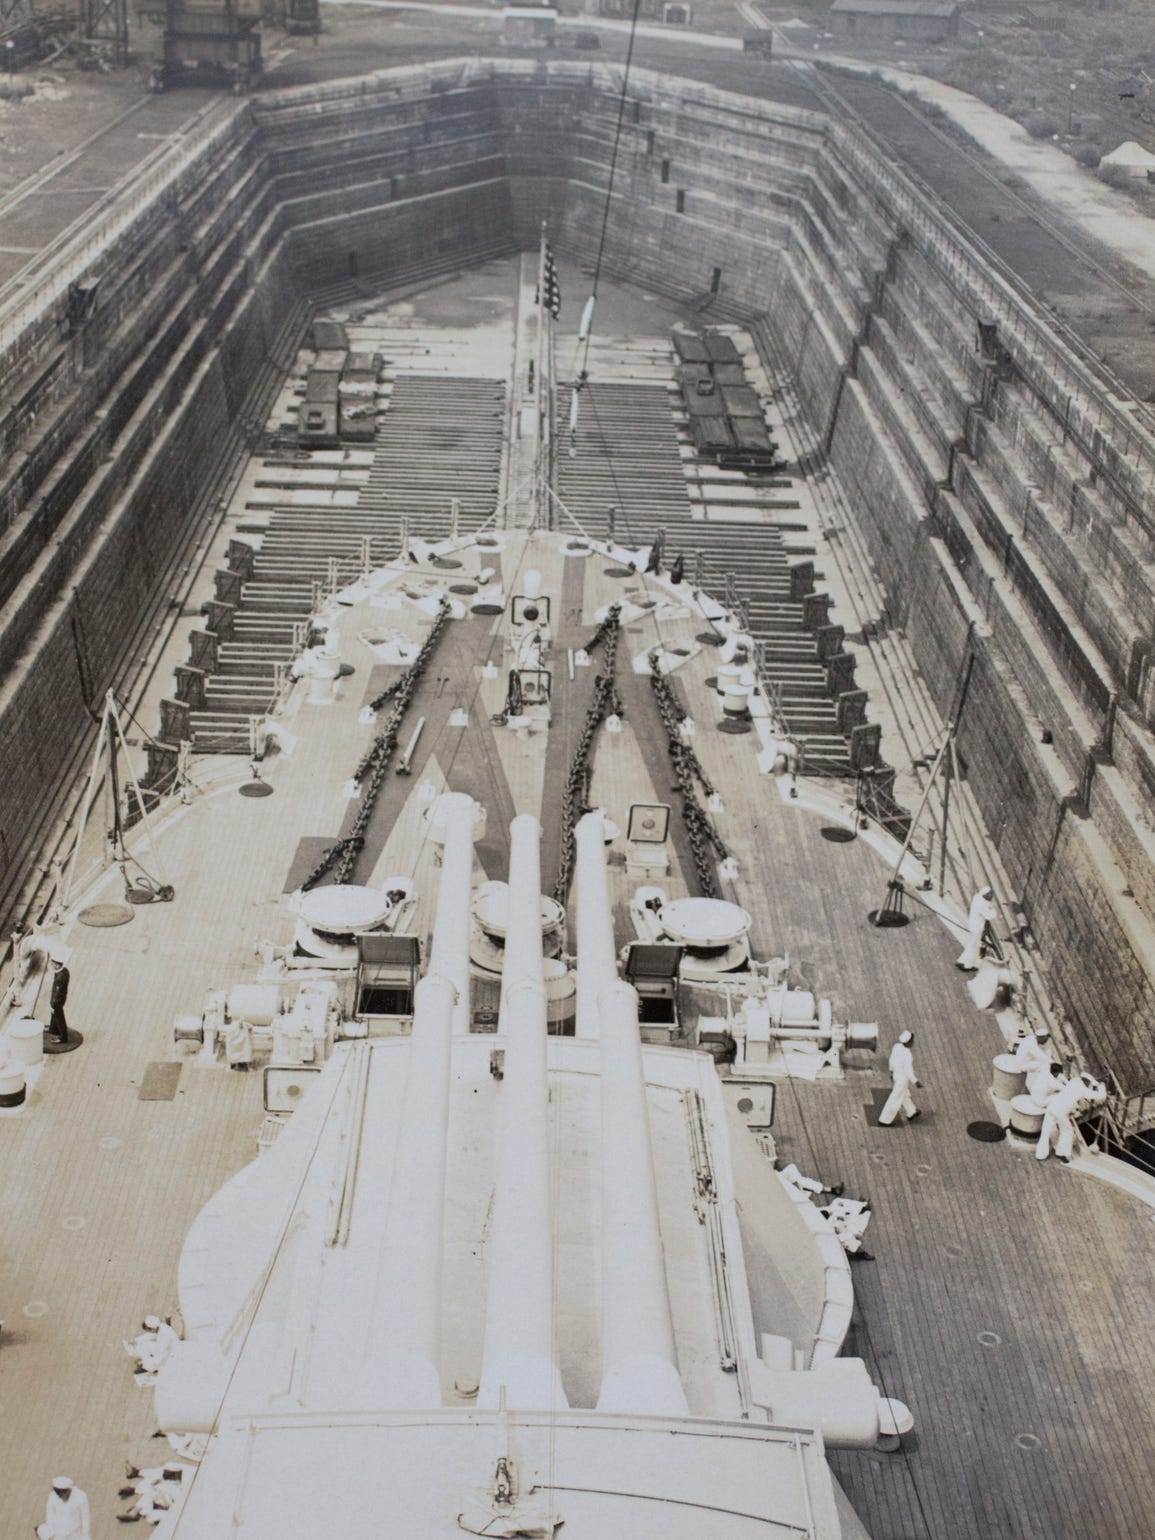 The USS Arizona in dry dock, seen from above.